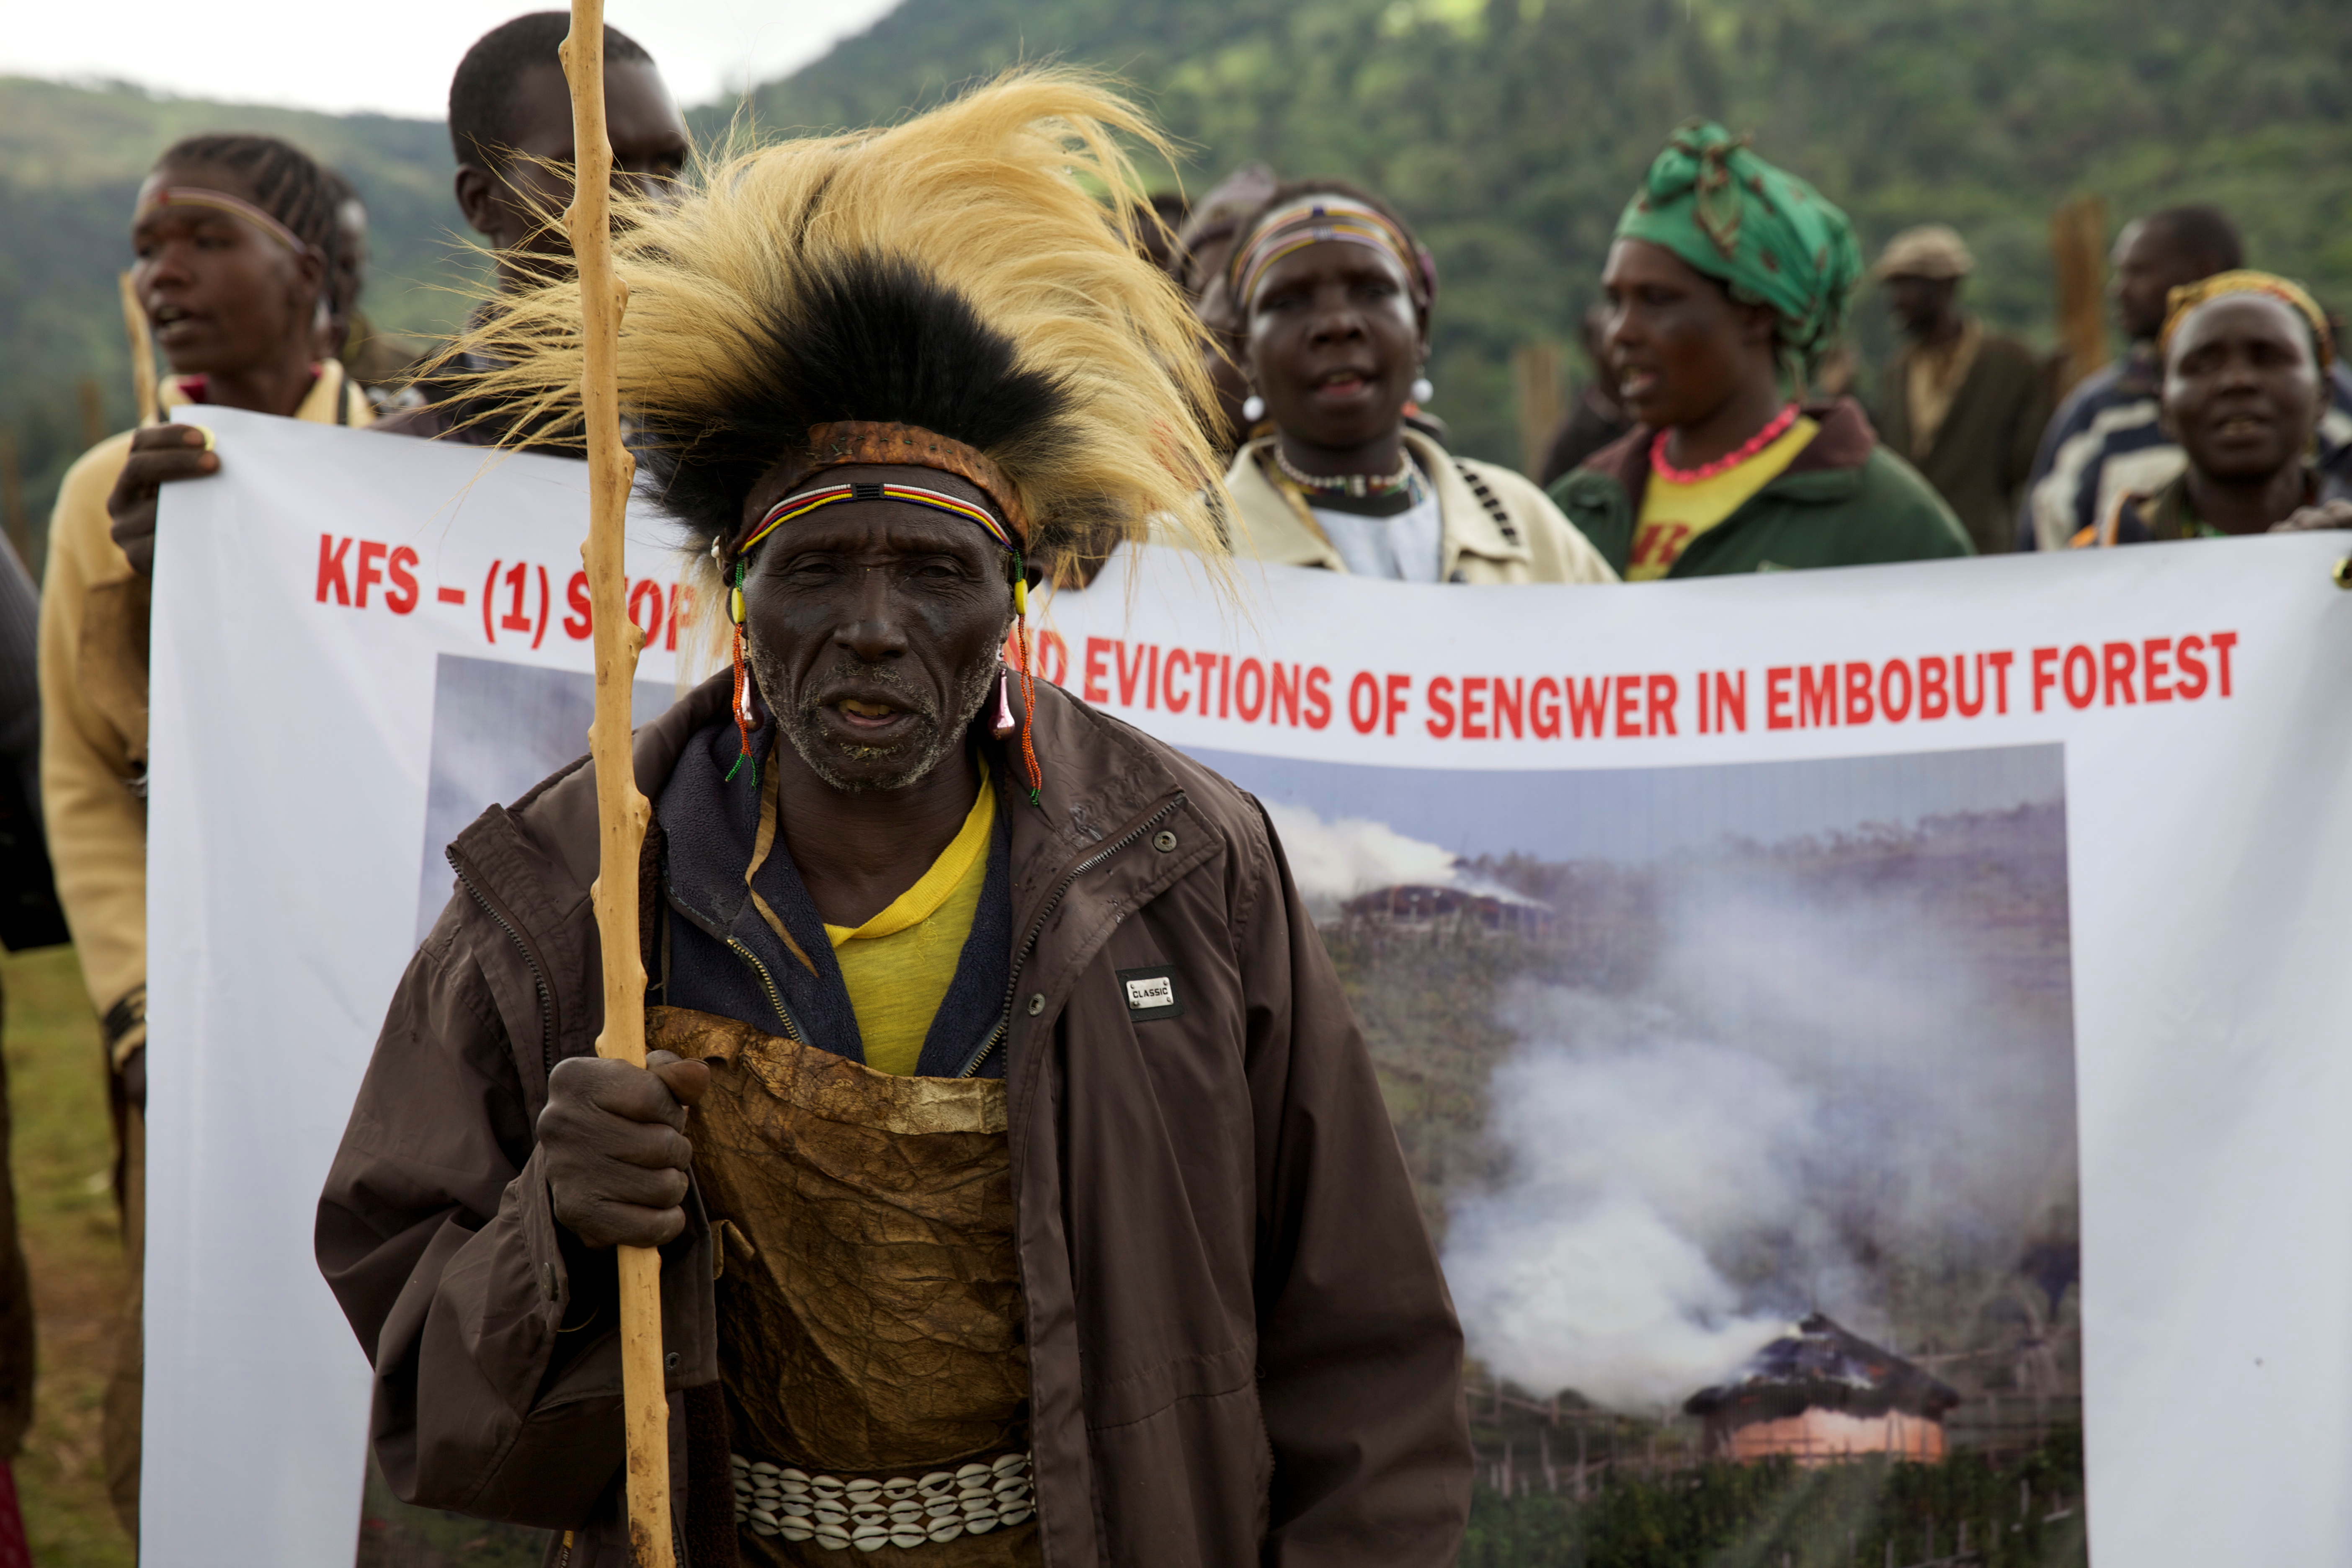 FILE - People from the Sengwer community protest their eviction from their ancestral lands, Embobut Forest, by the government for forest conservation in western Kenya, April 19, 2016.